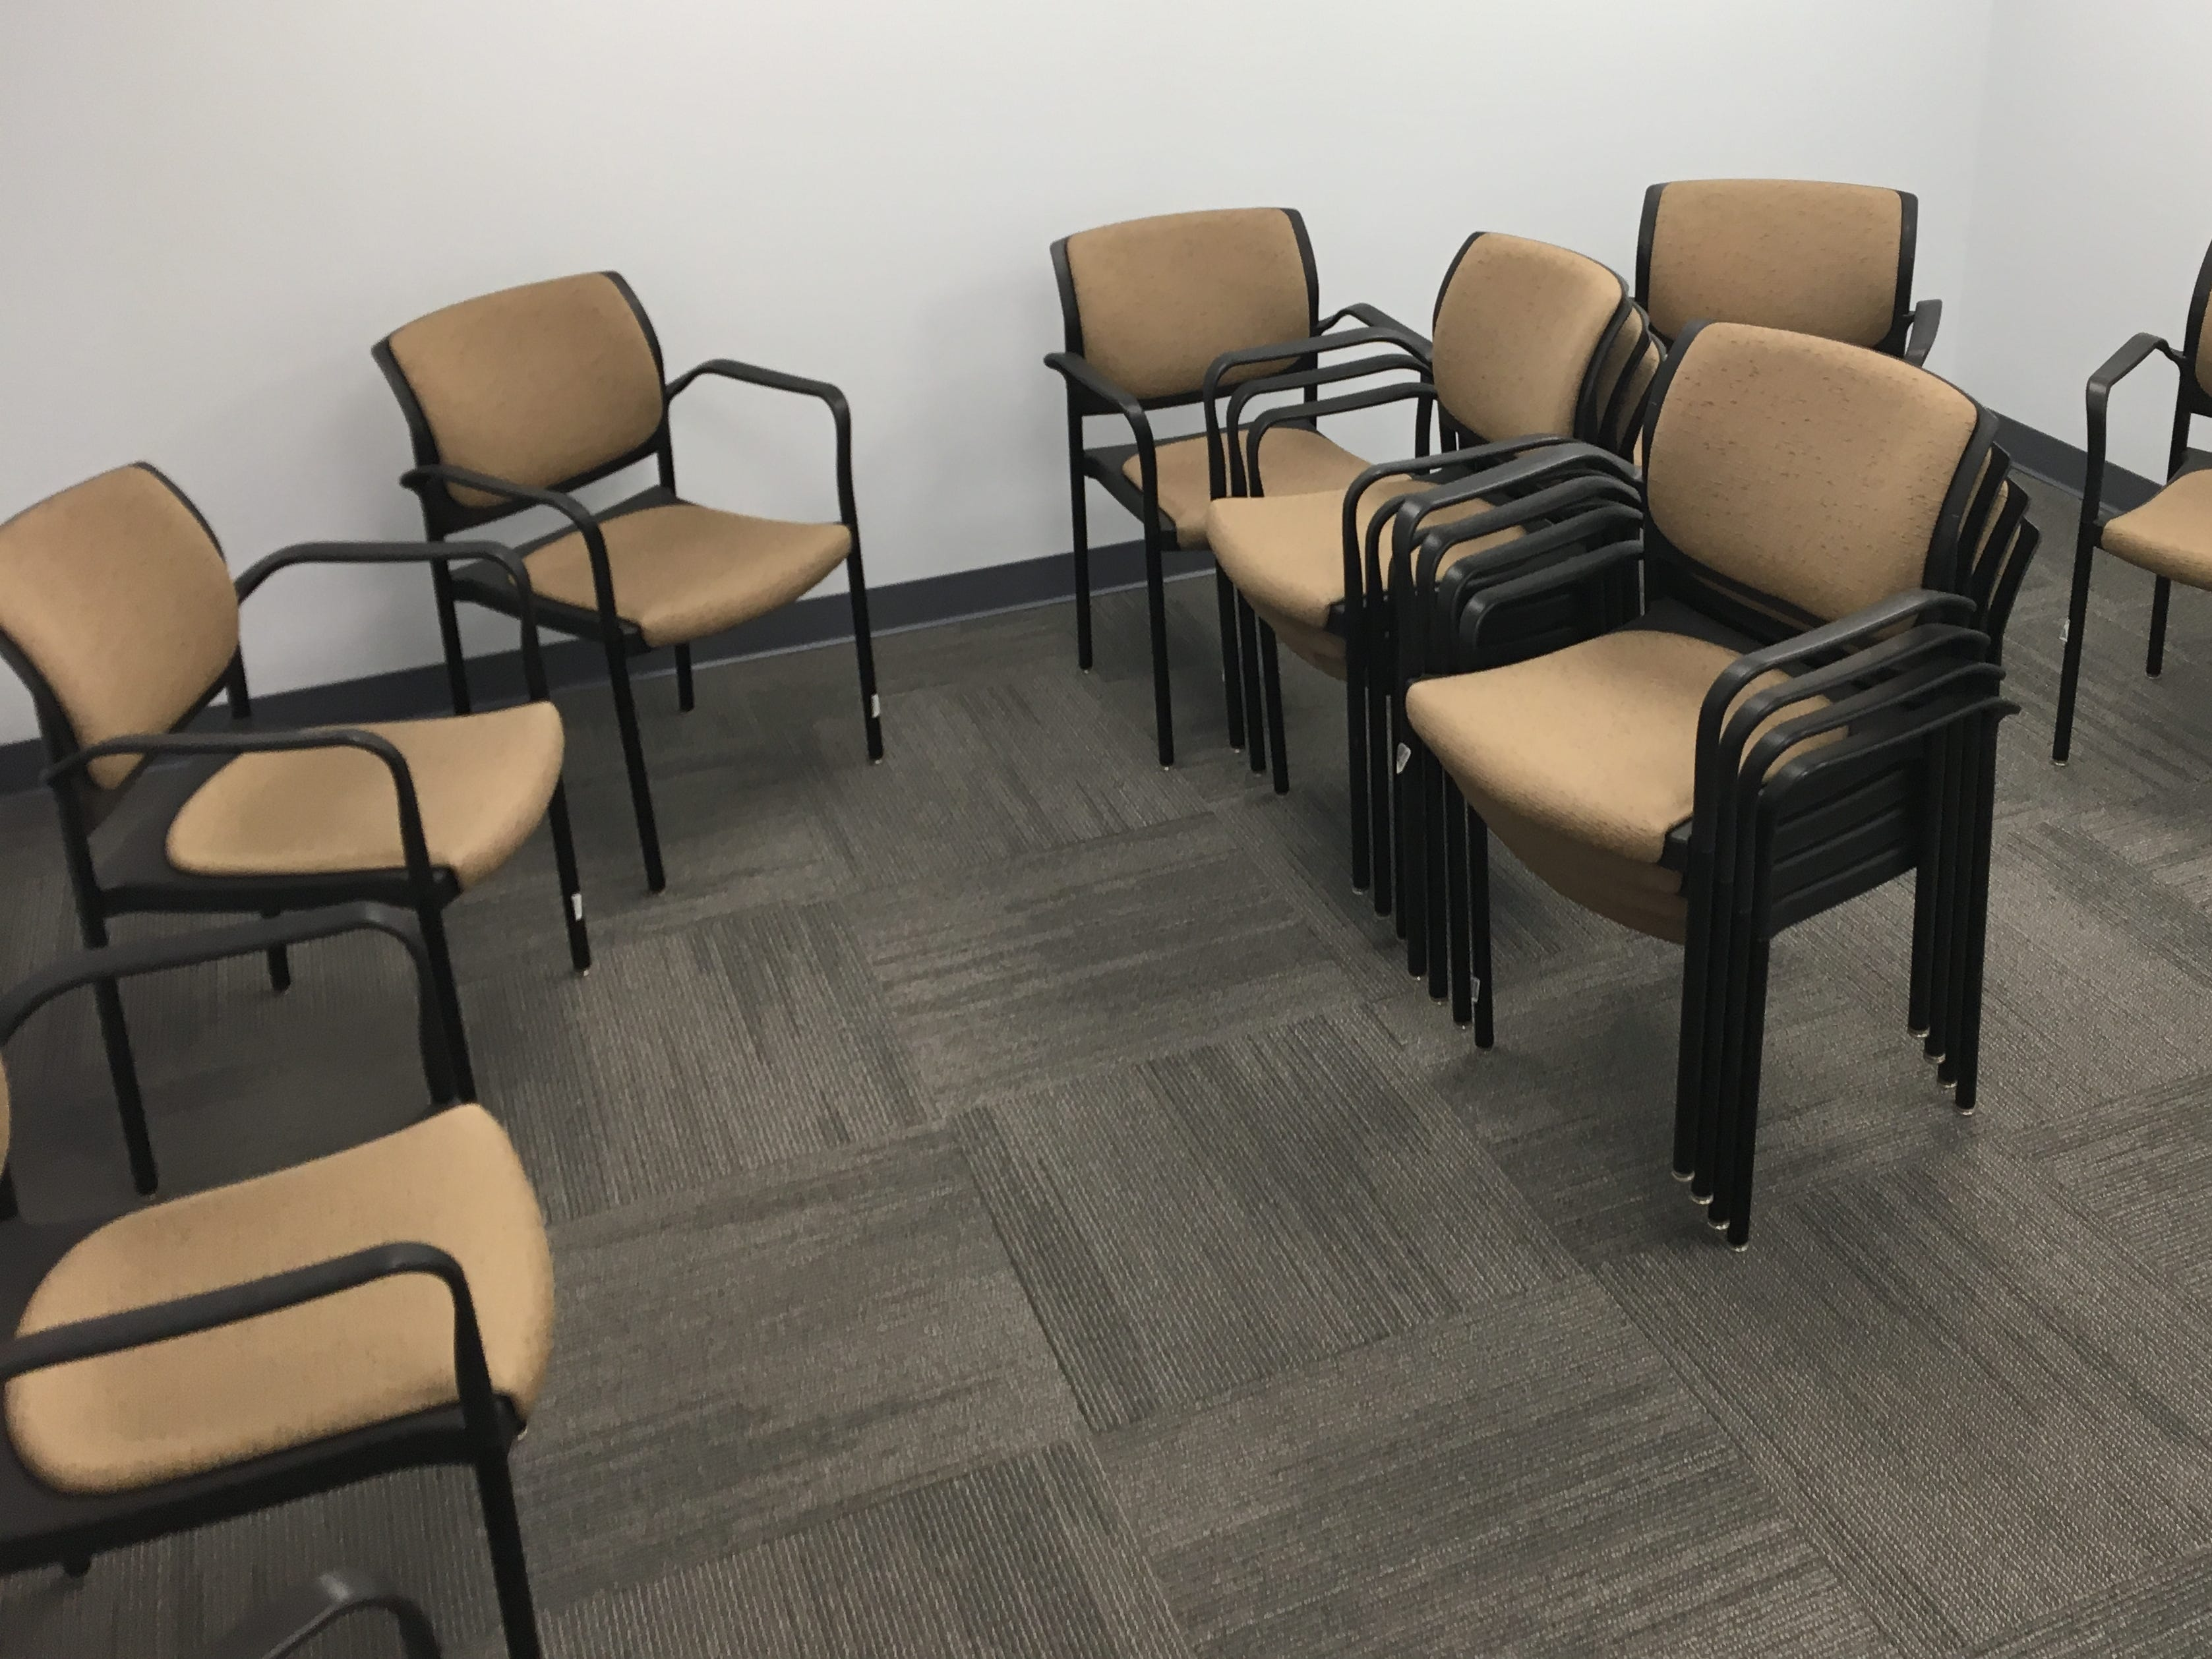 One of the meeting rooms for group sessions. Project 180's approach views addiction as a disease and believes that immediate access to care is imperative.